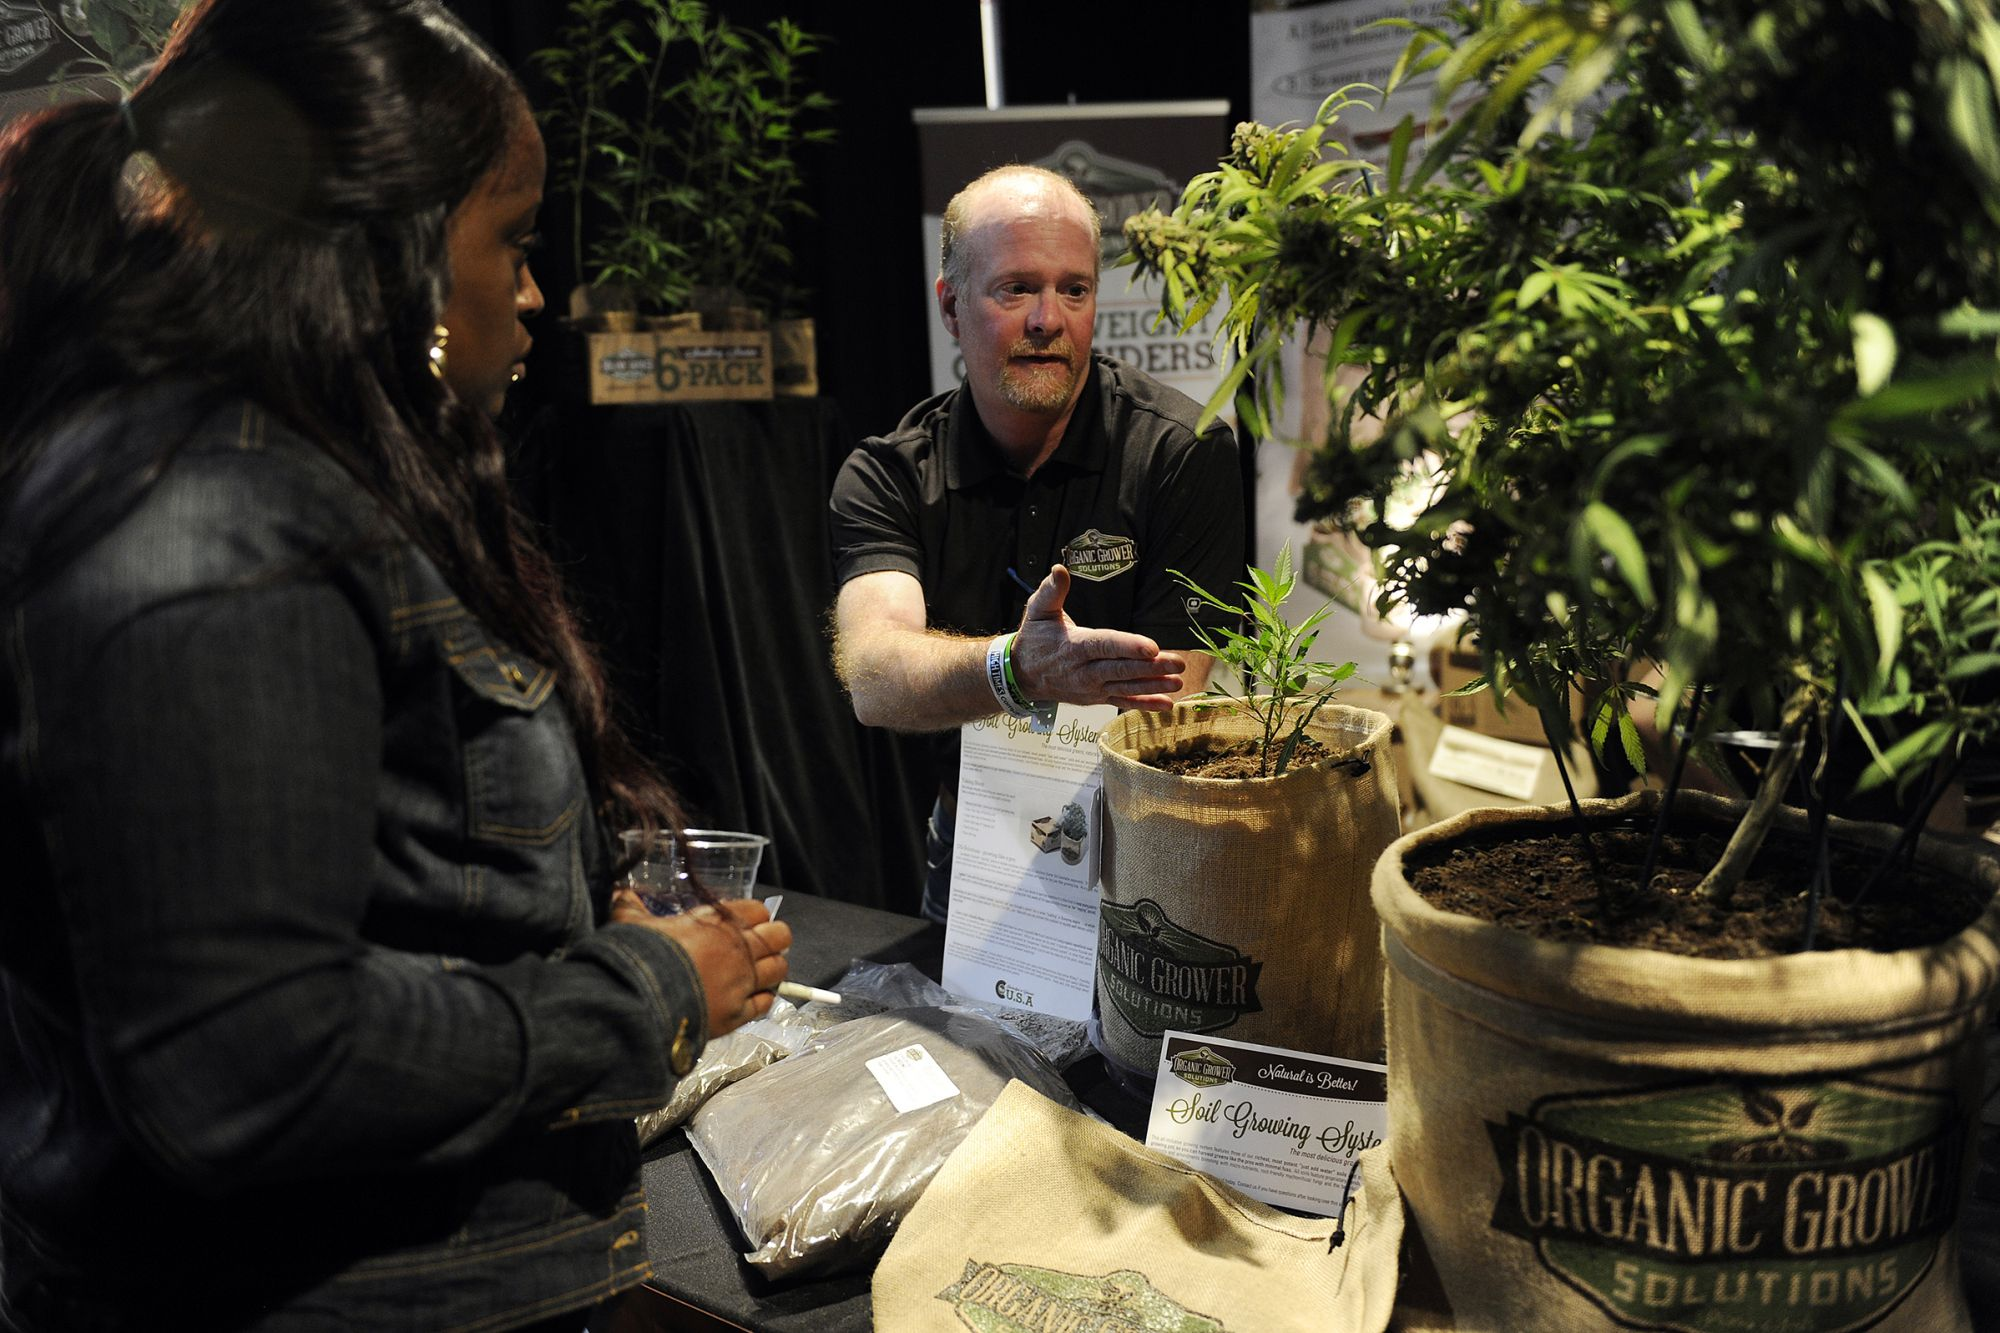 Some Tips for East Coast Cannabis Entrepreneurs From Colorado's Industry Leaders